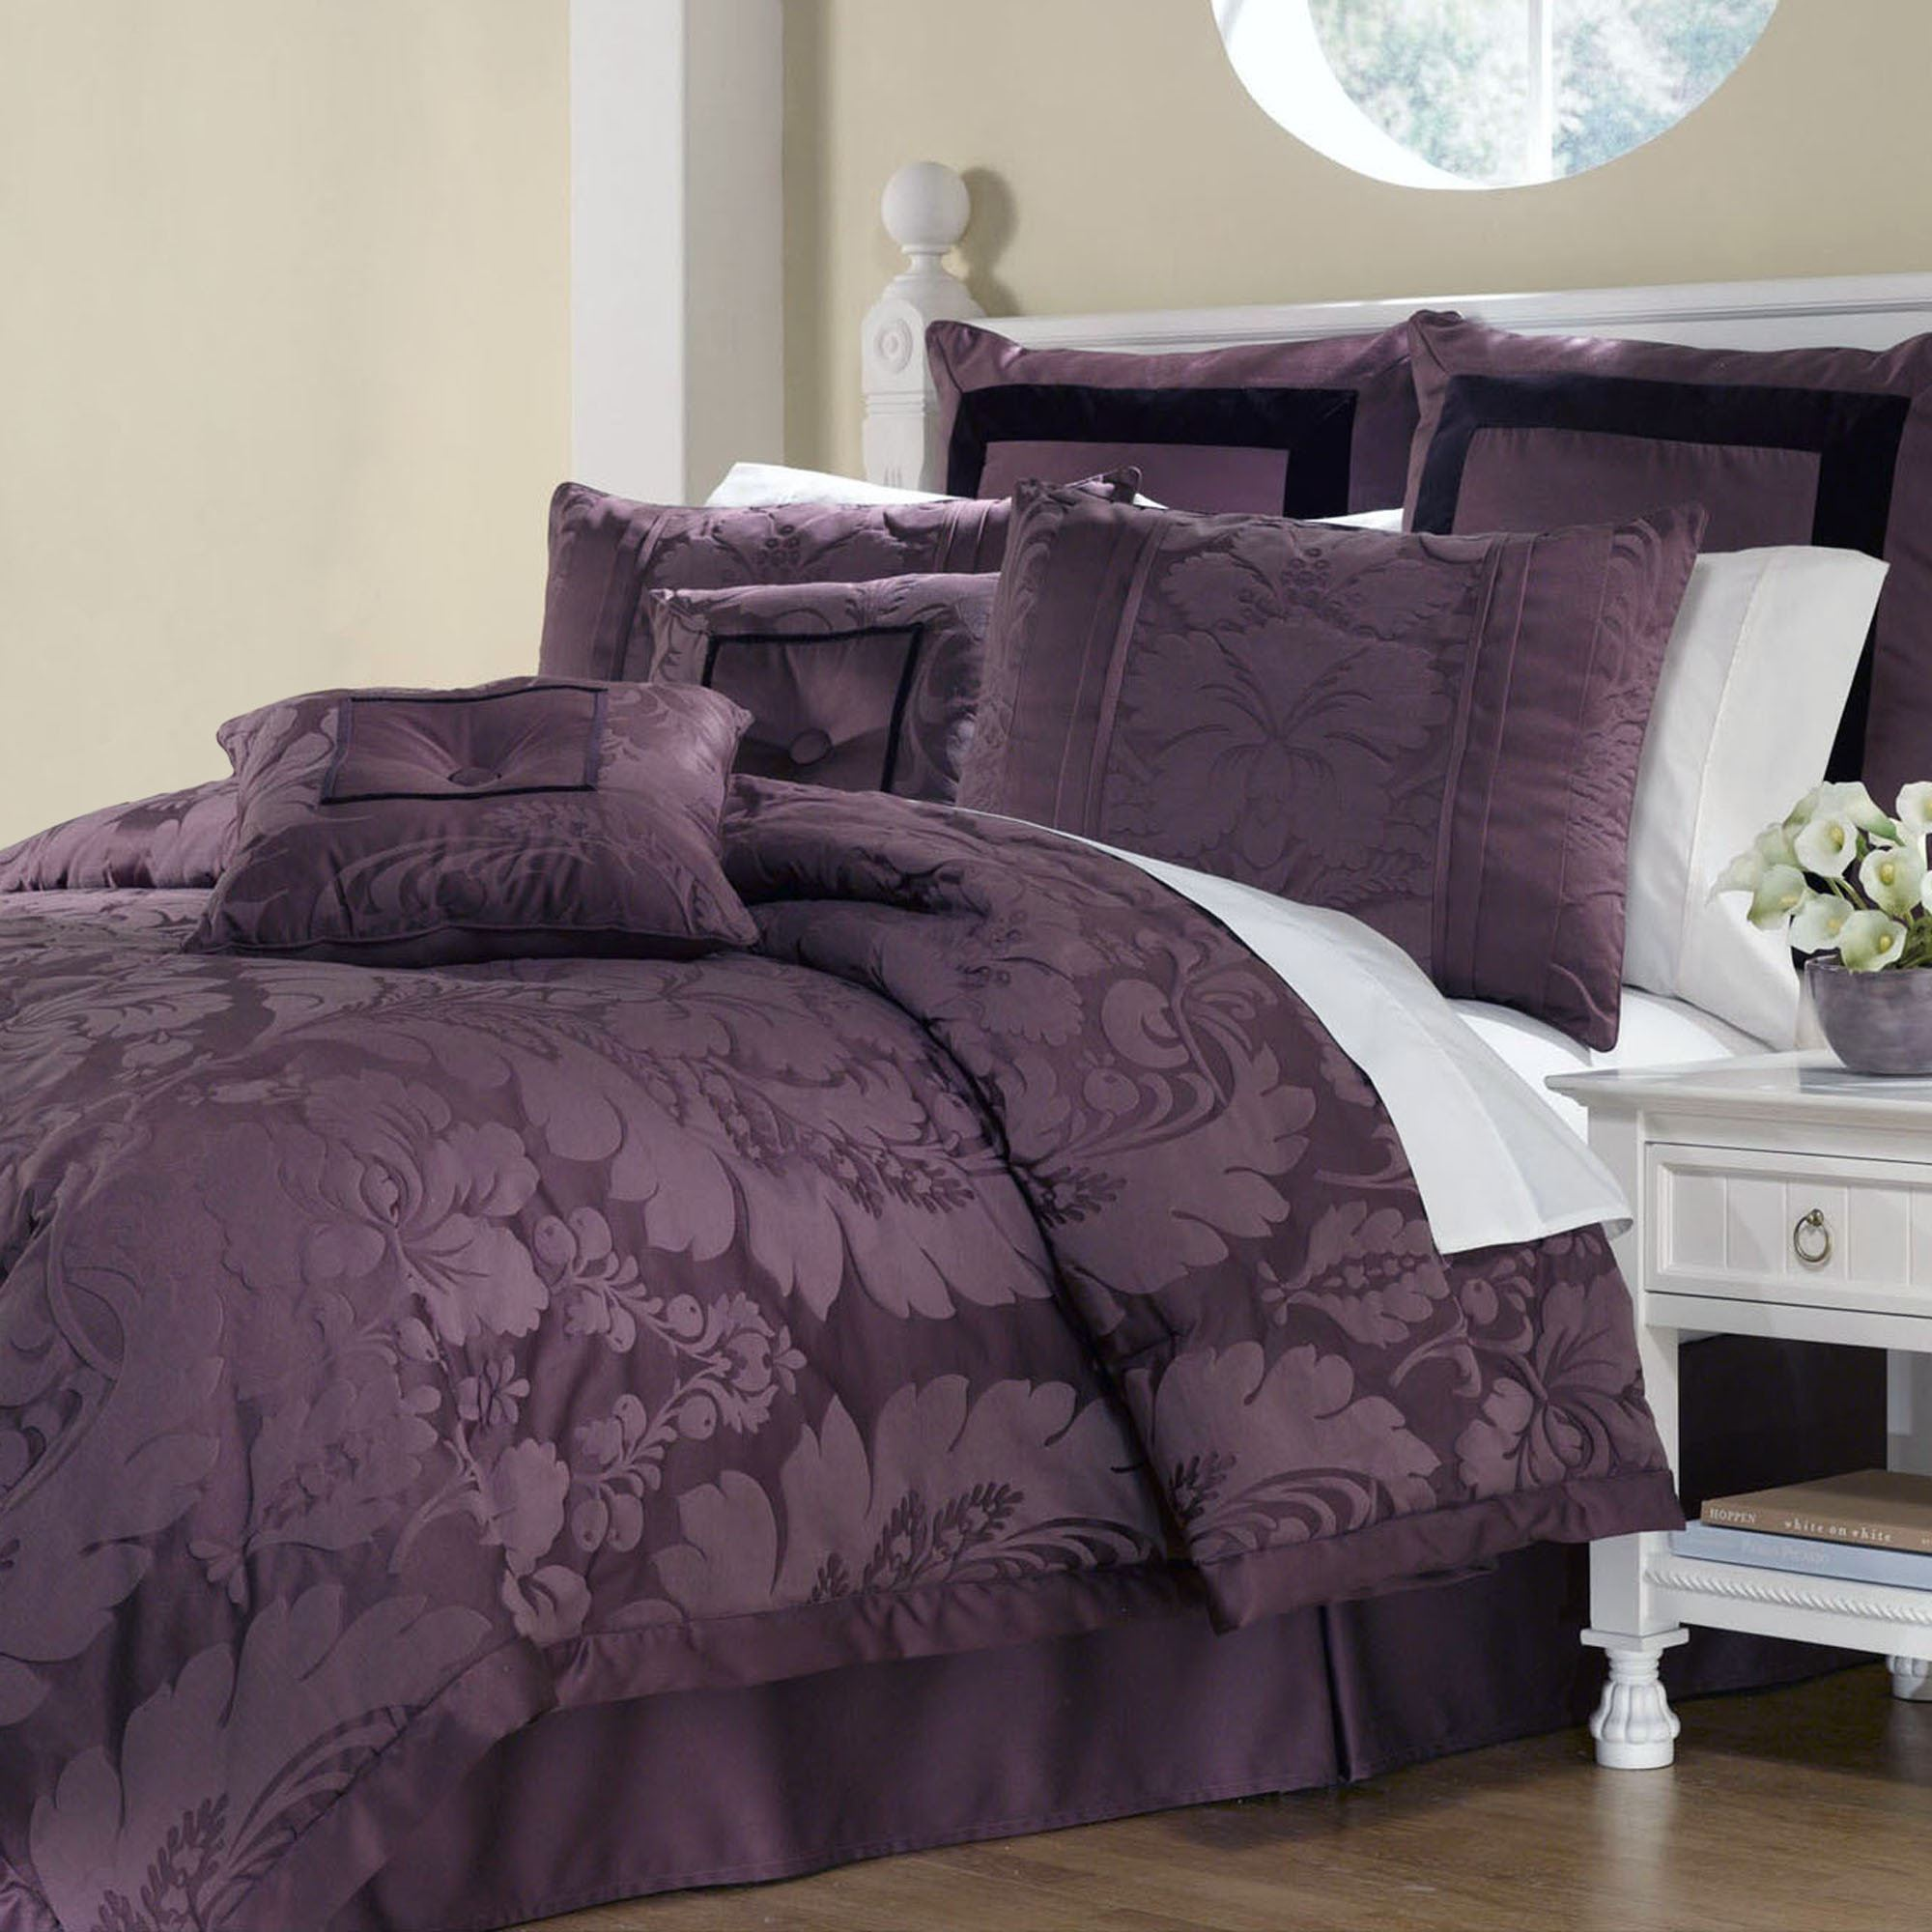 bed lily sets pin set pinterest color bedding comforter and solid